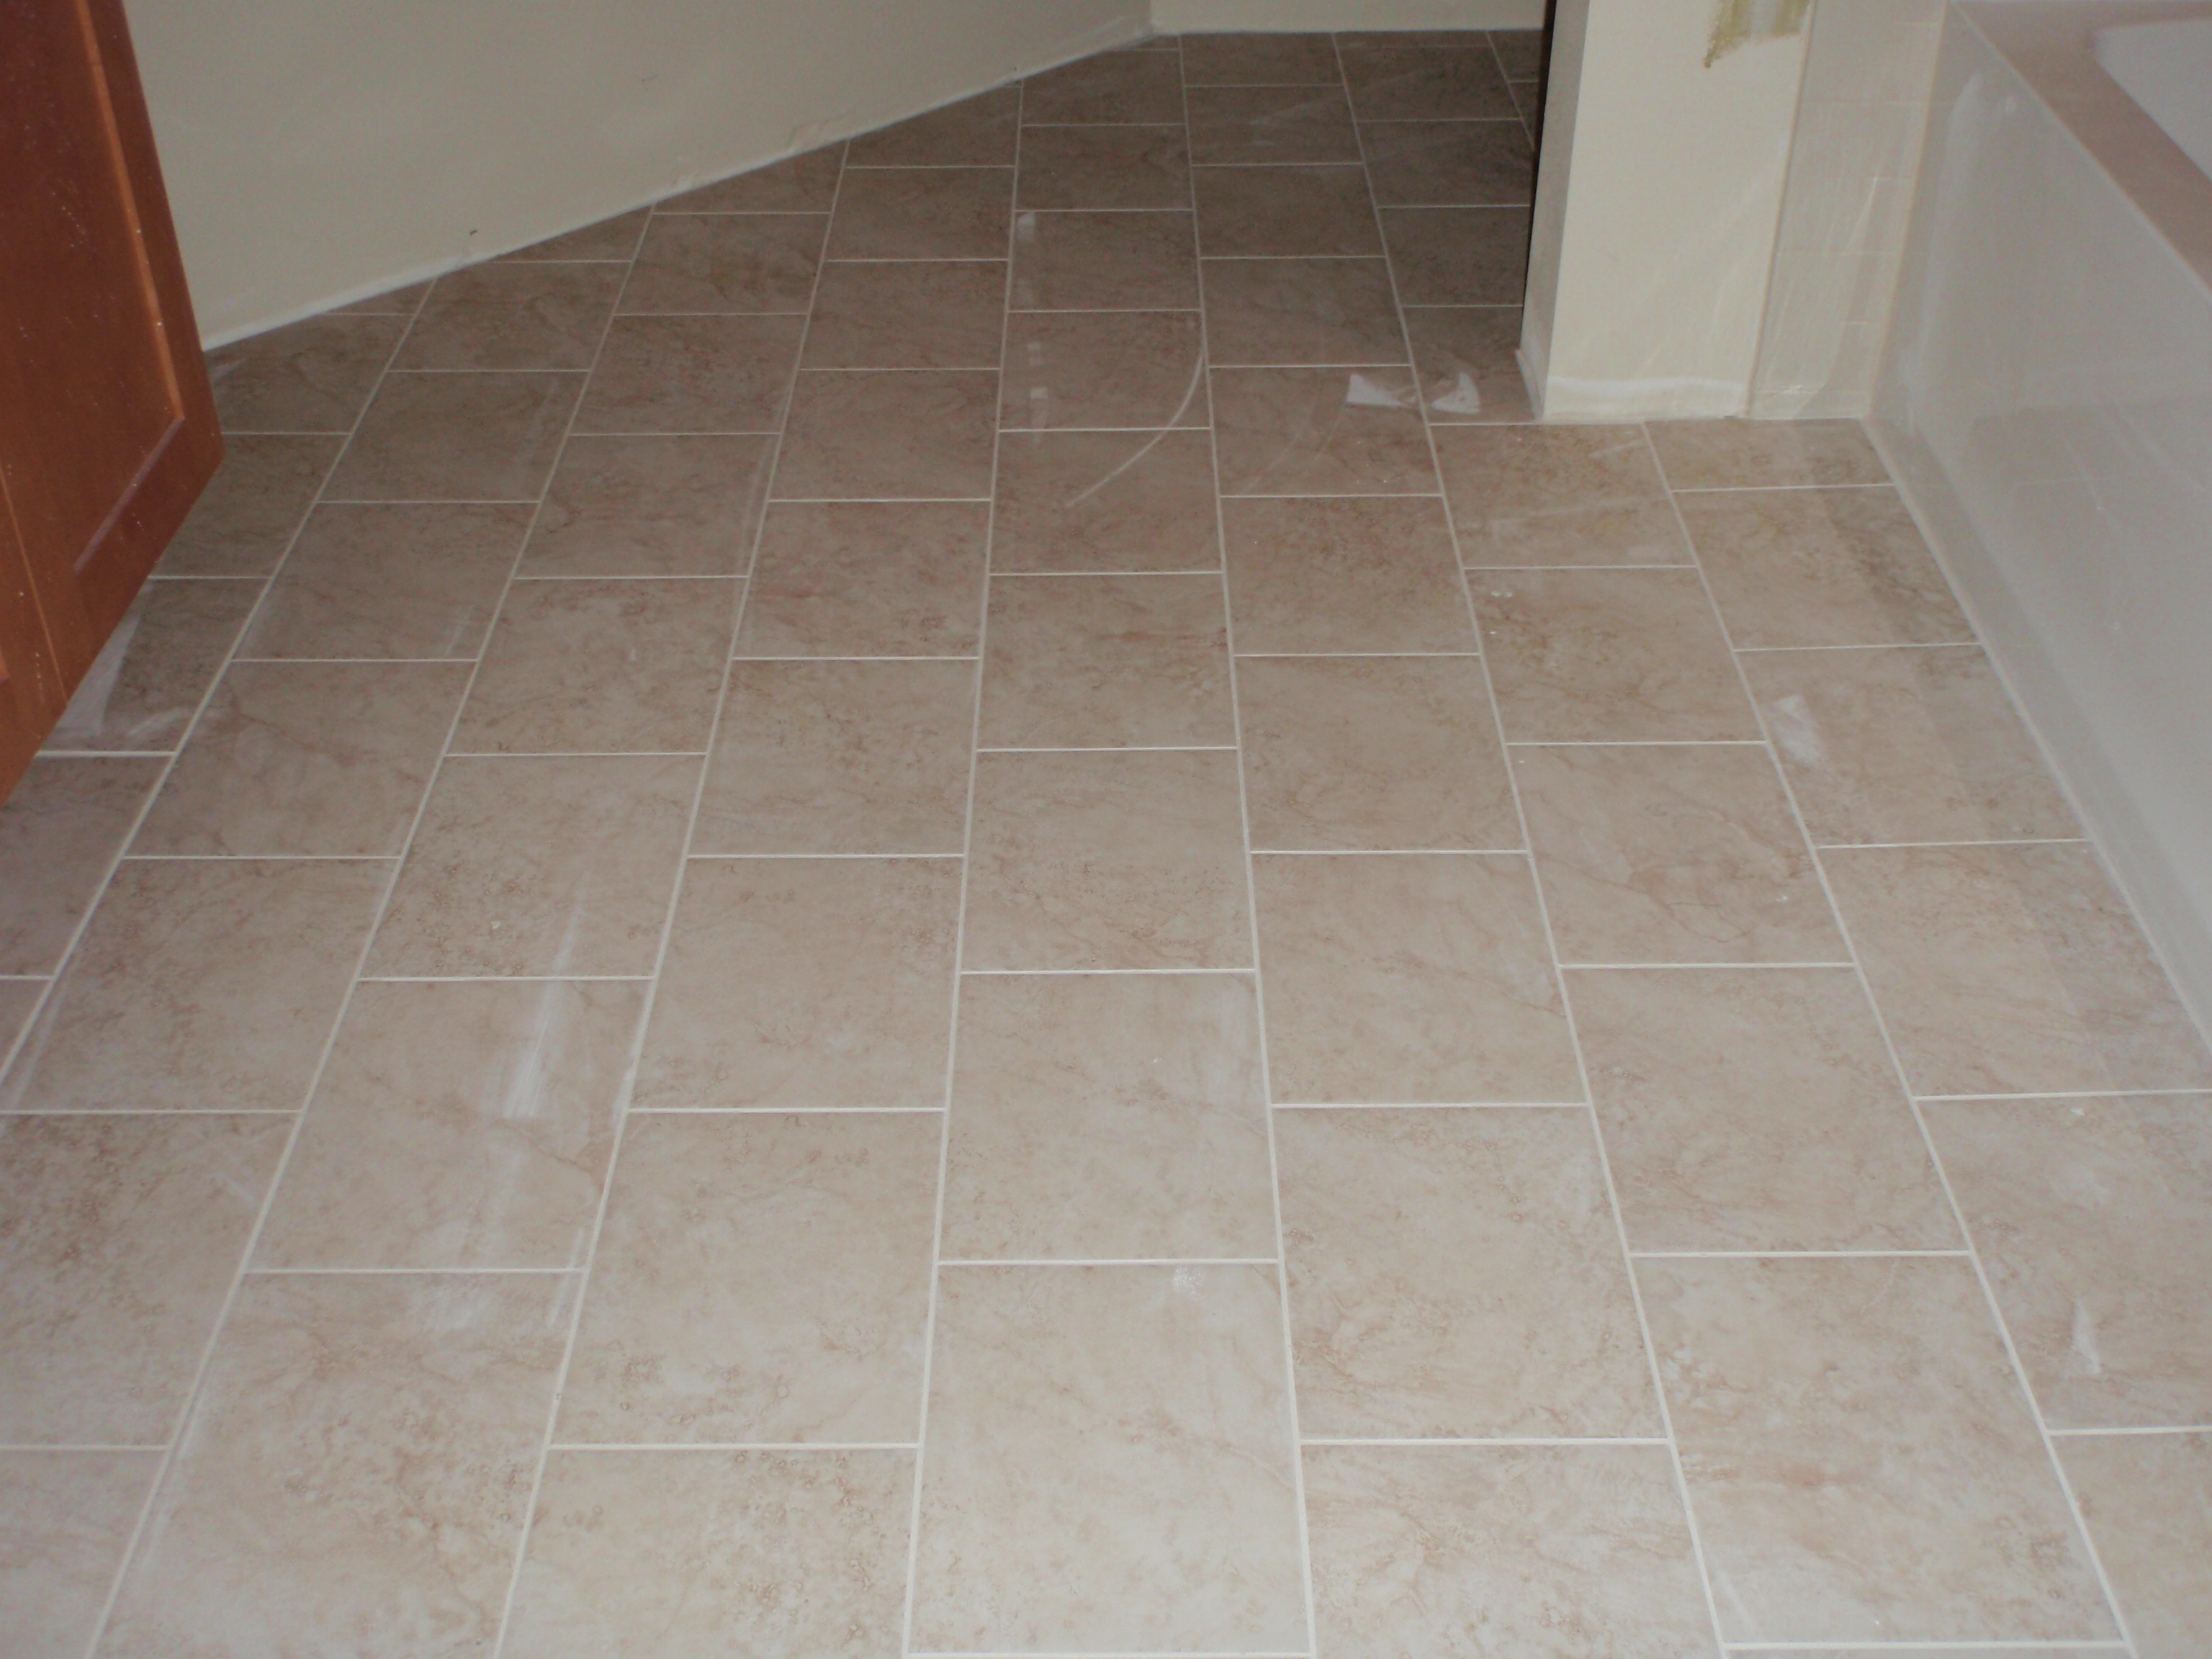 Types Of Flooring For Kitchens Vinyl Bathroom Flooring Options Cleaning Self Adhesive Floor